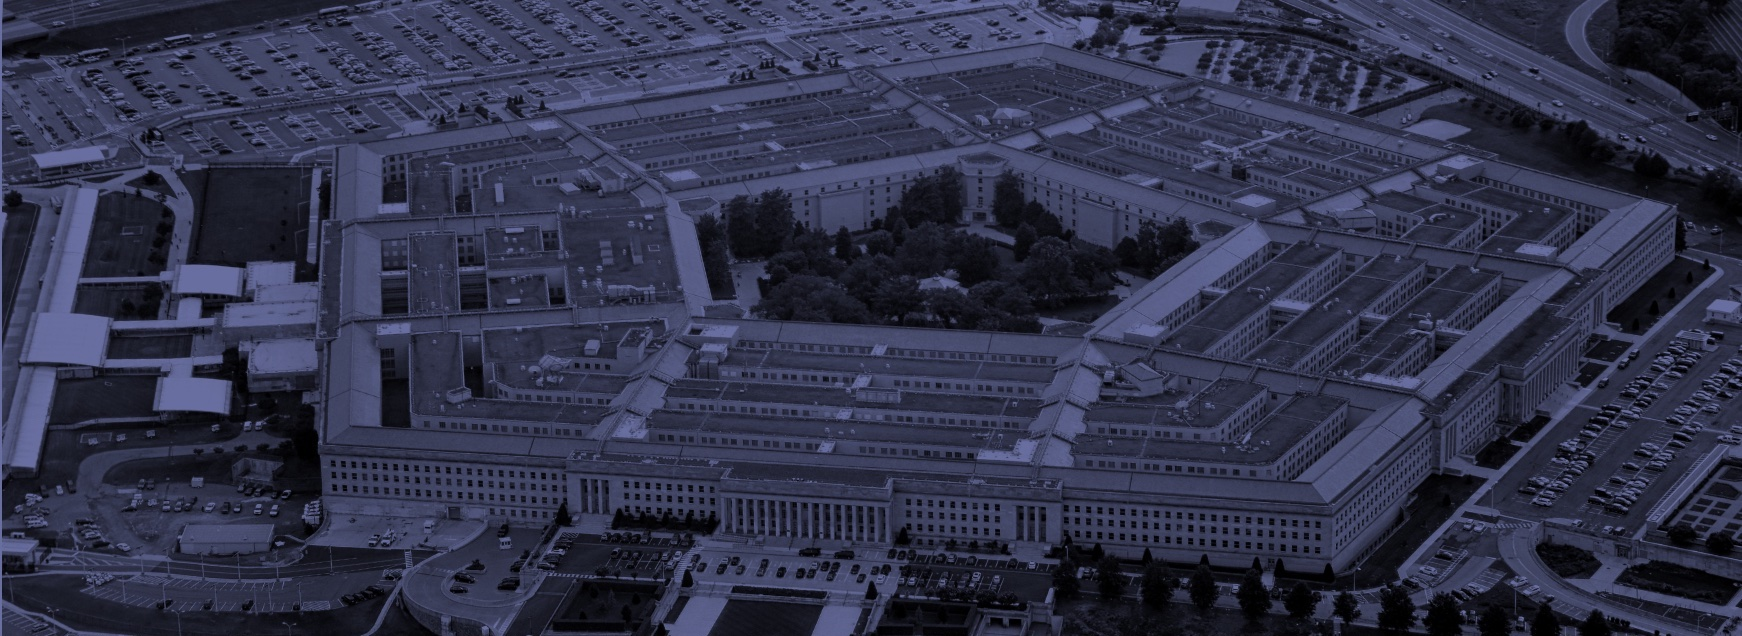 blue aerial view of the united states pentagon